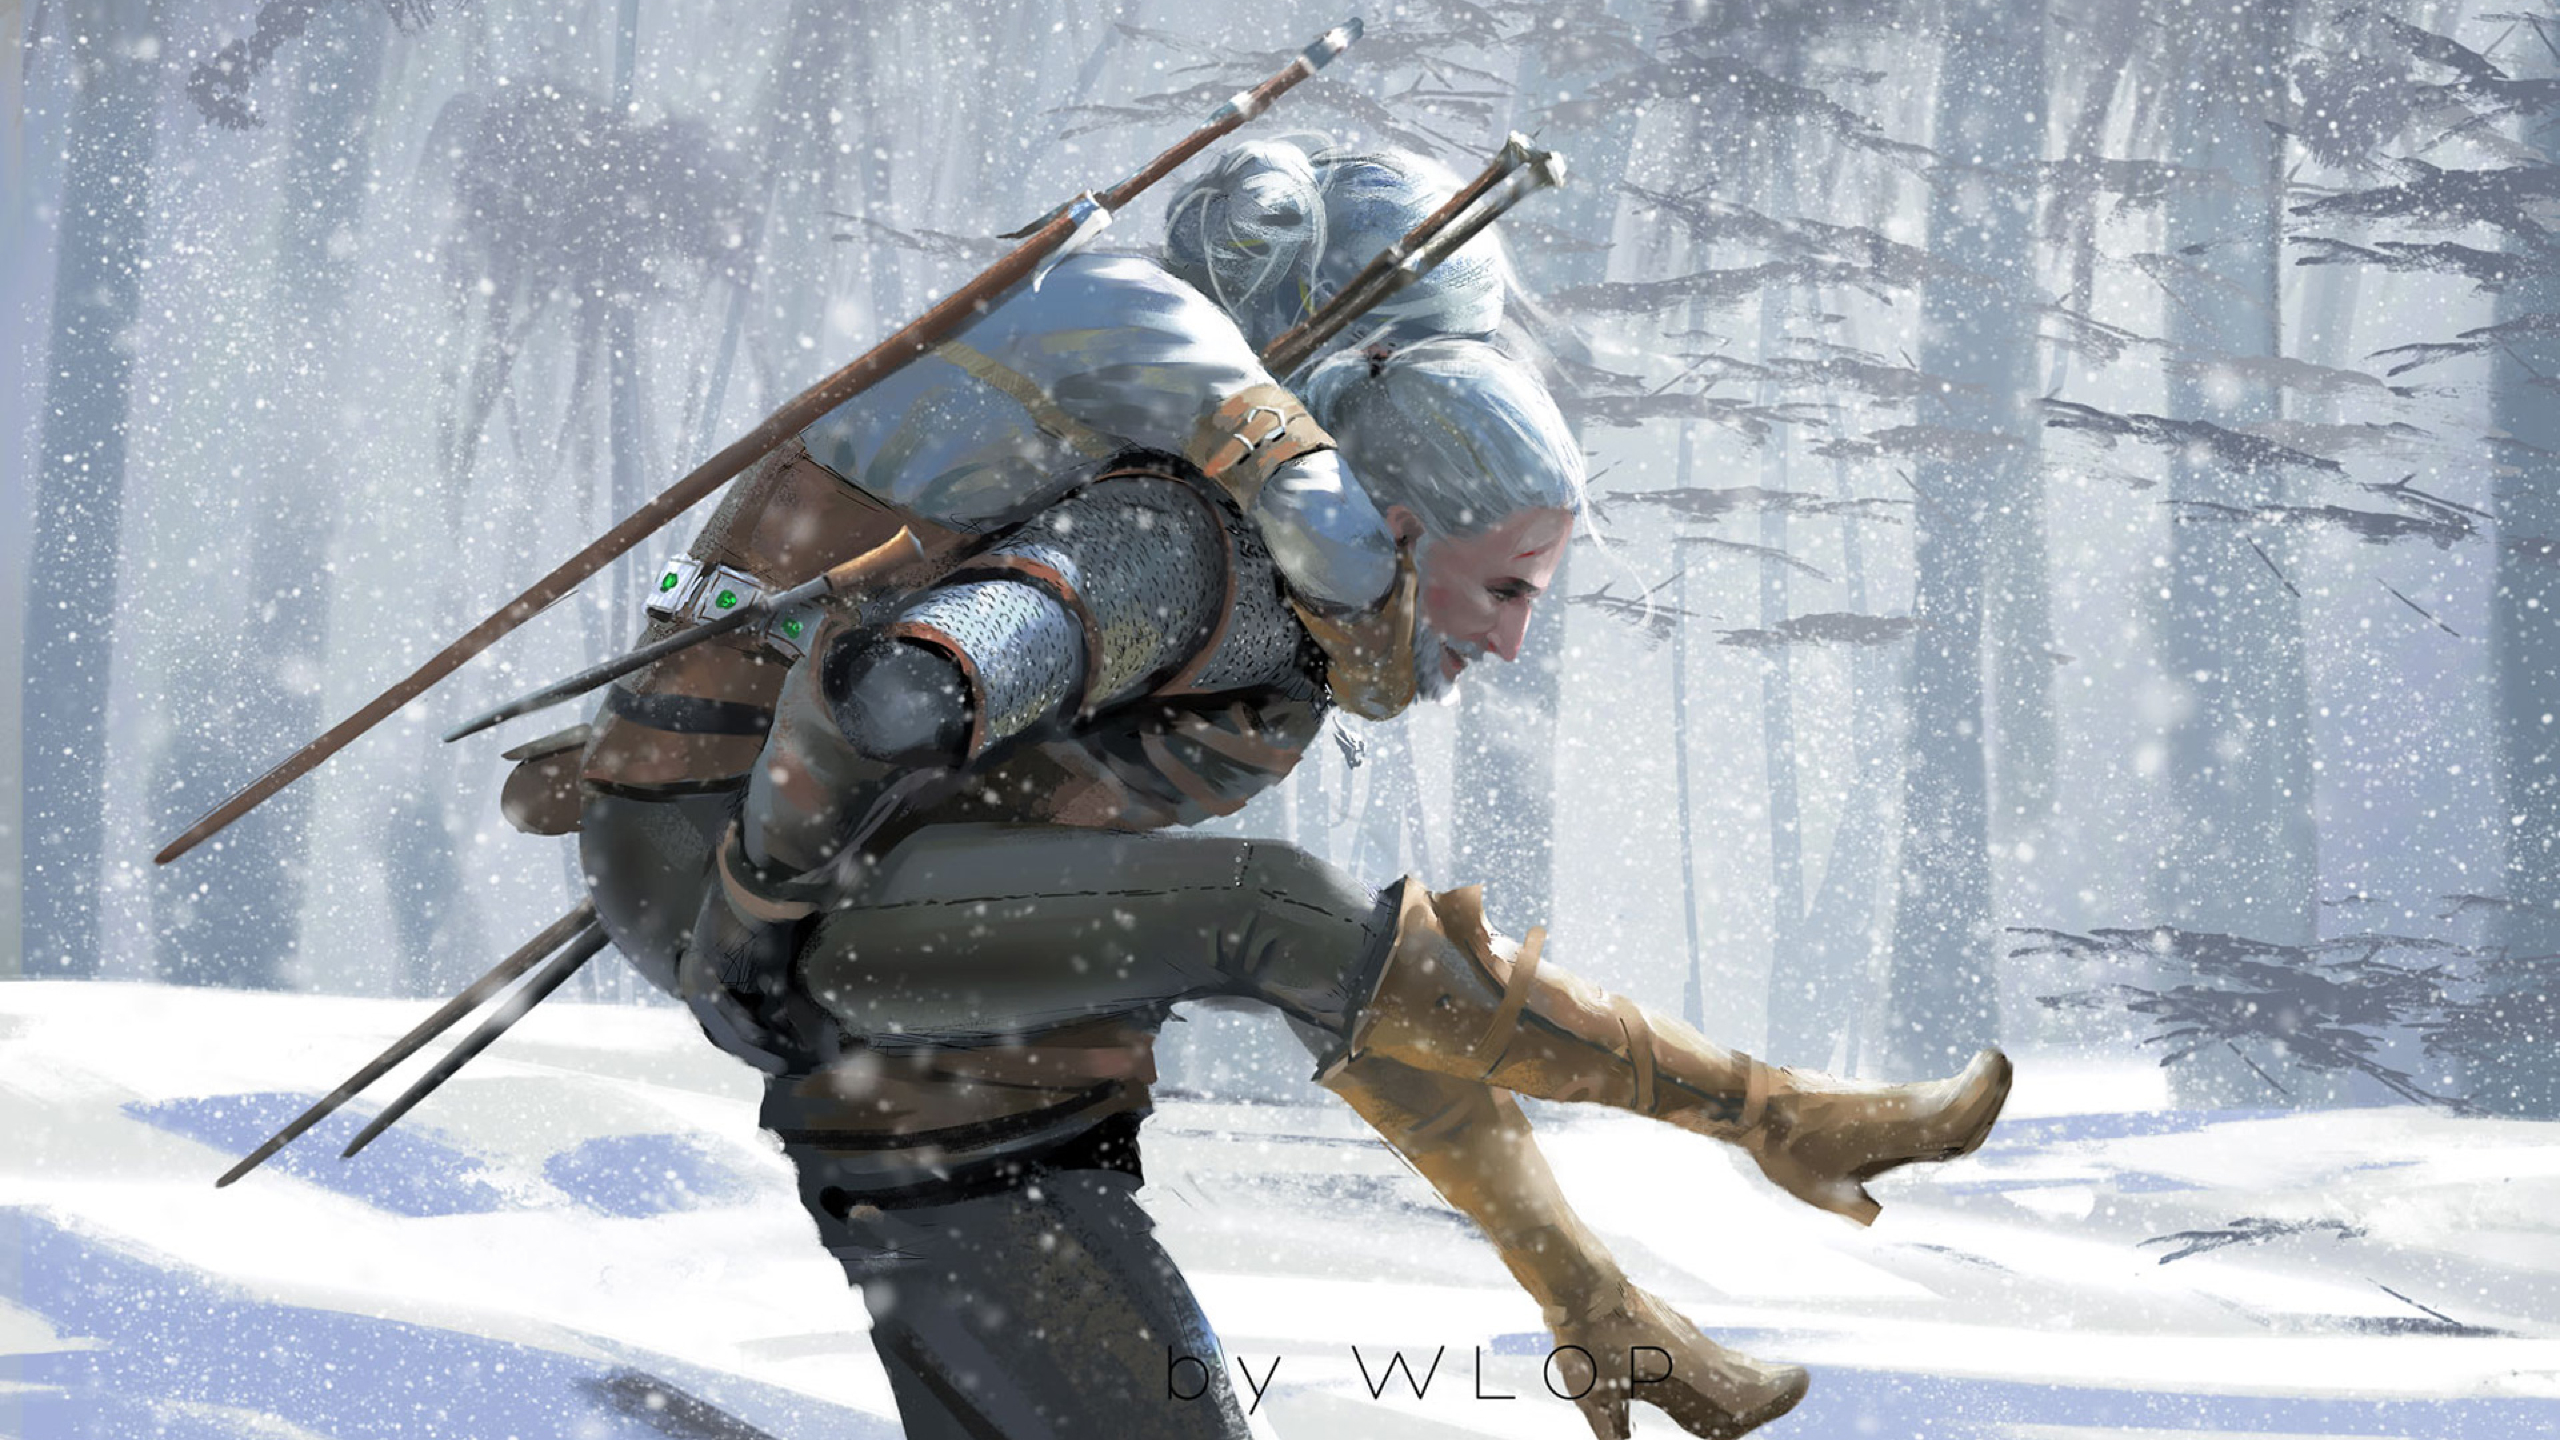 2560x1440 The Witcher 3 Wild Hunt Artwork 1440p Resolution